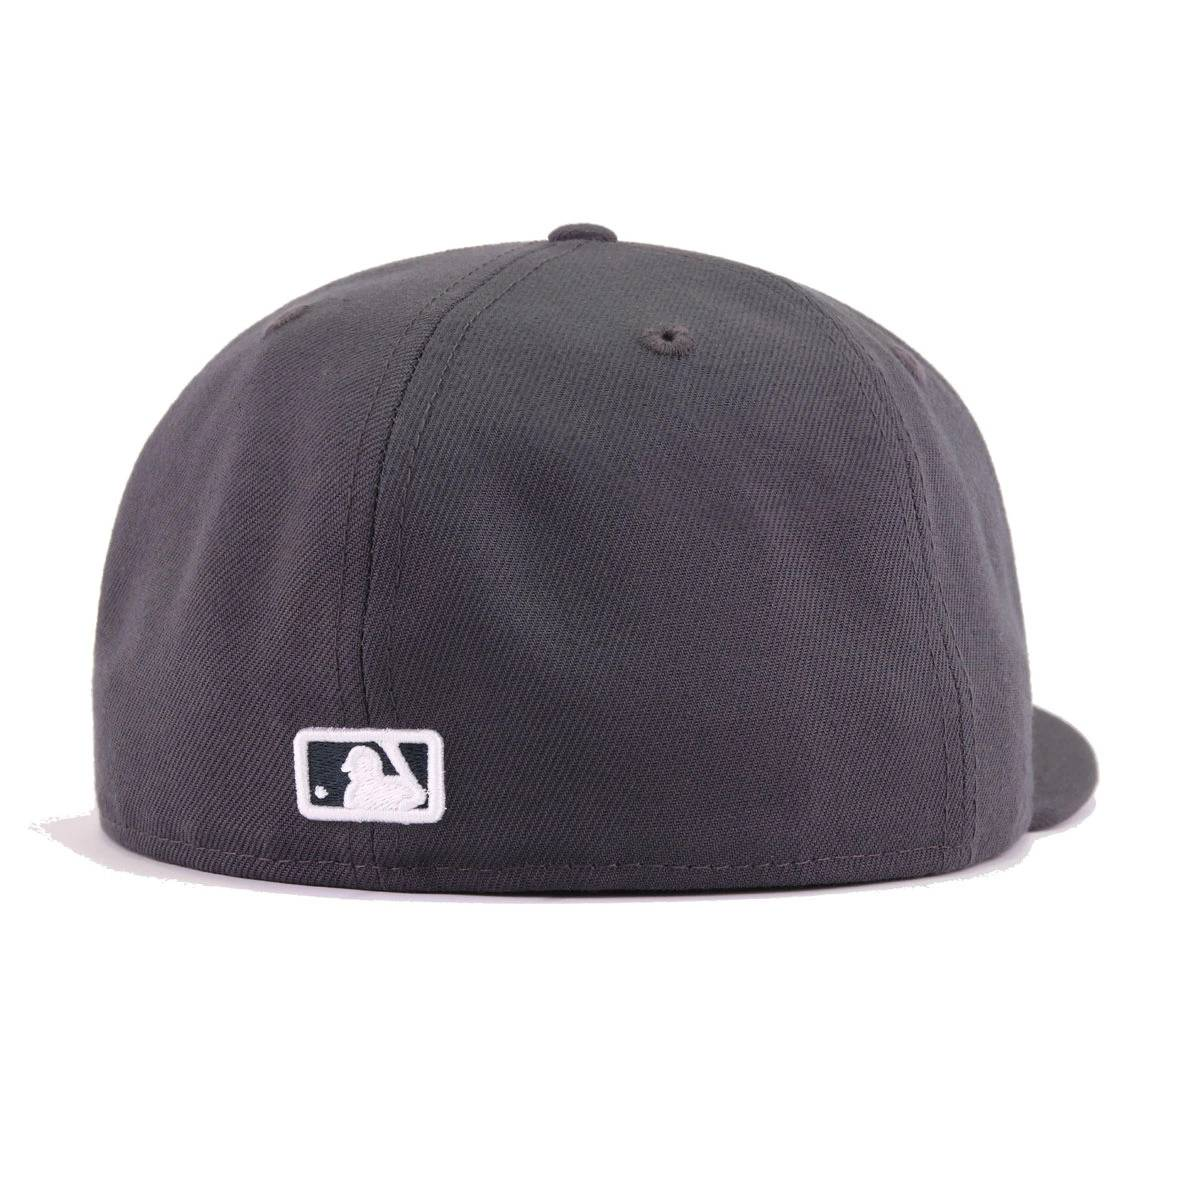 New York Yankees Graphite New Era 59Fifty Fitted